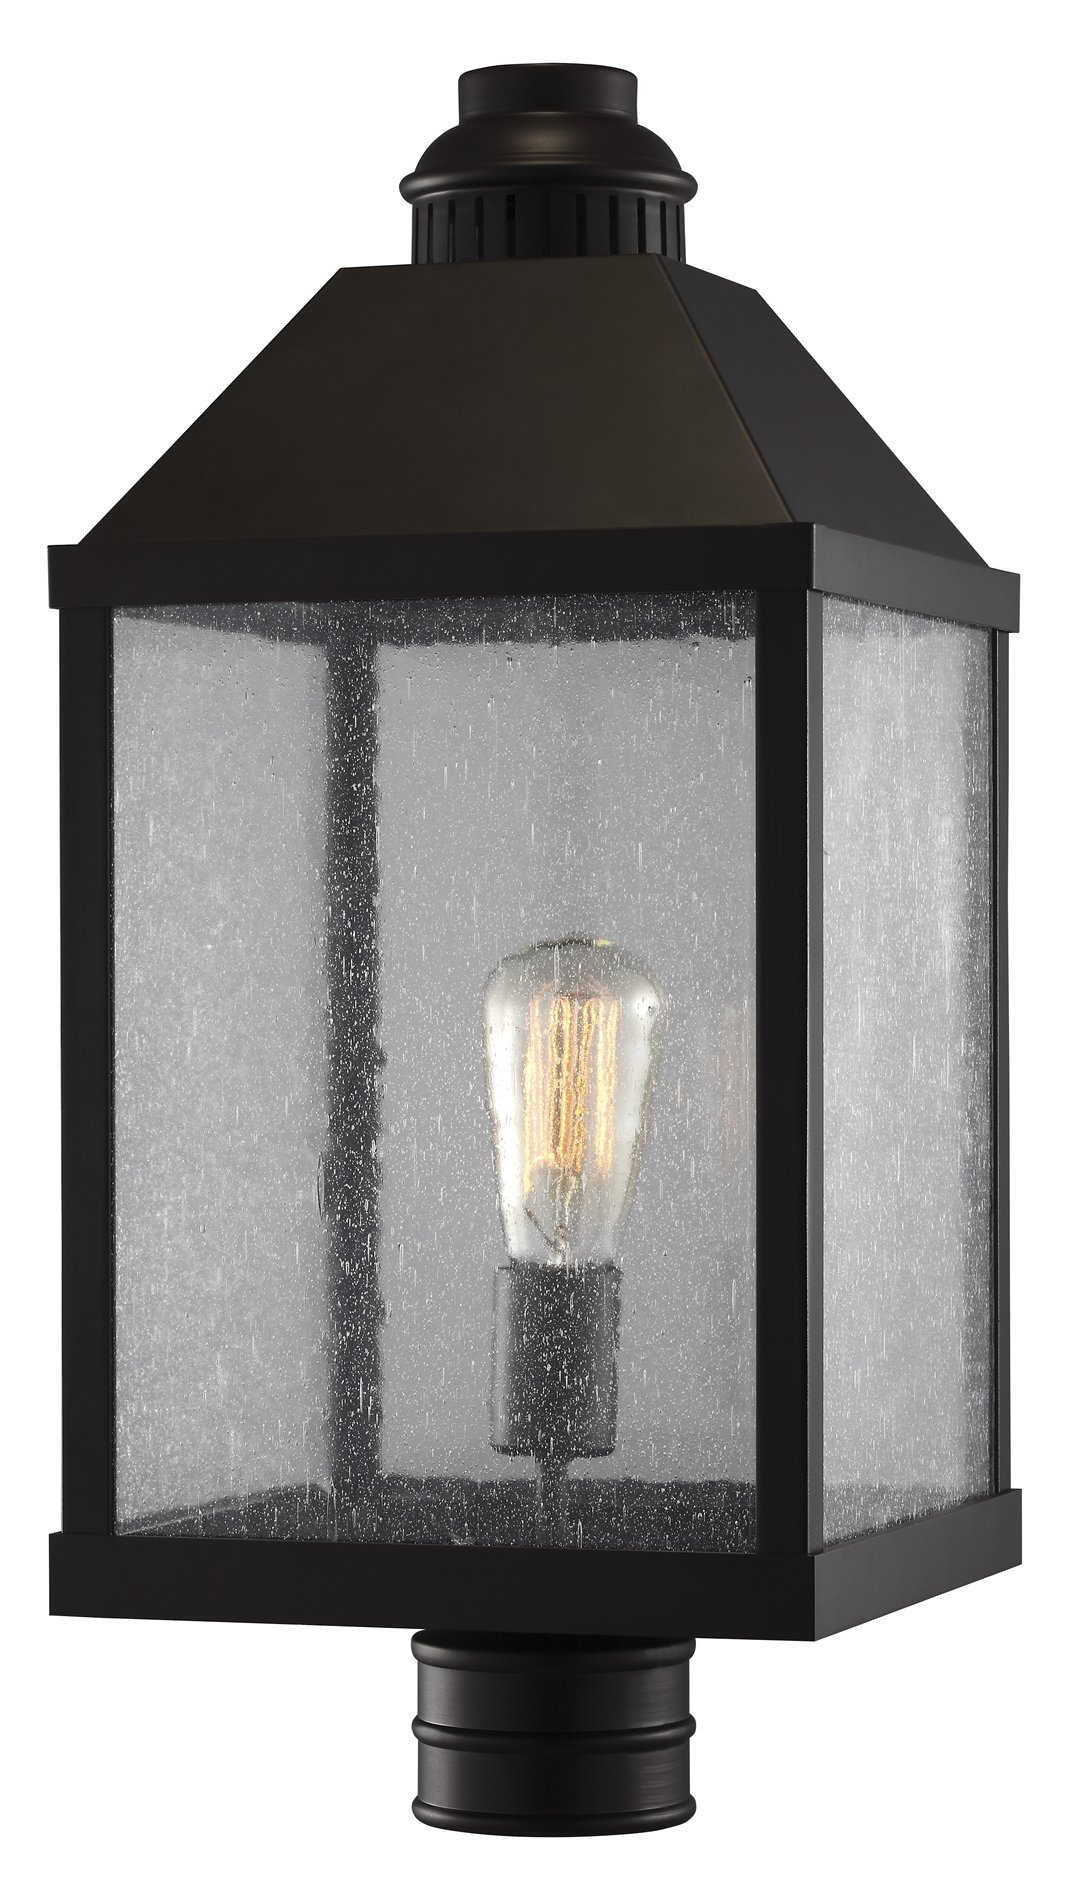 Murray Feiss Ol18010orb Lumiere 39 Traditional Outdoor Wall Sconce Mrf Ol18010orb